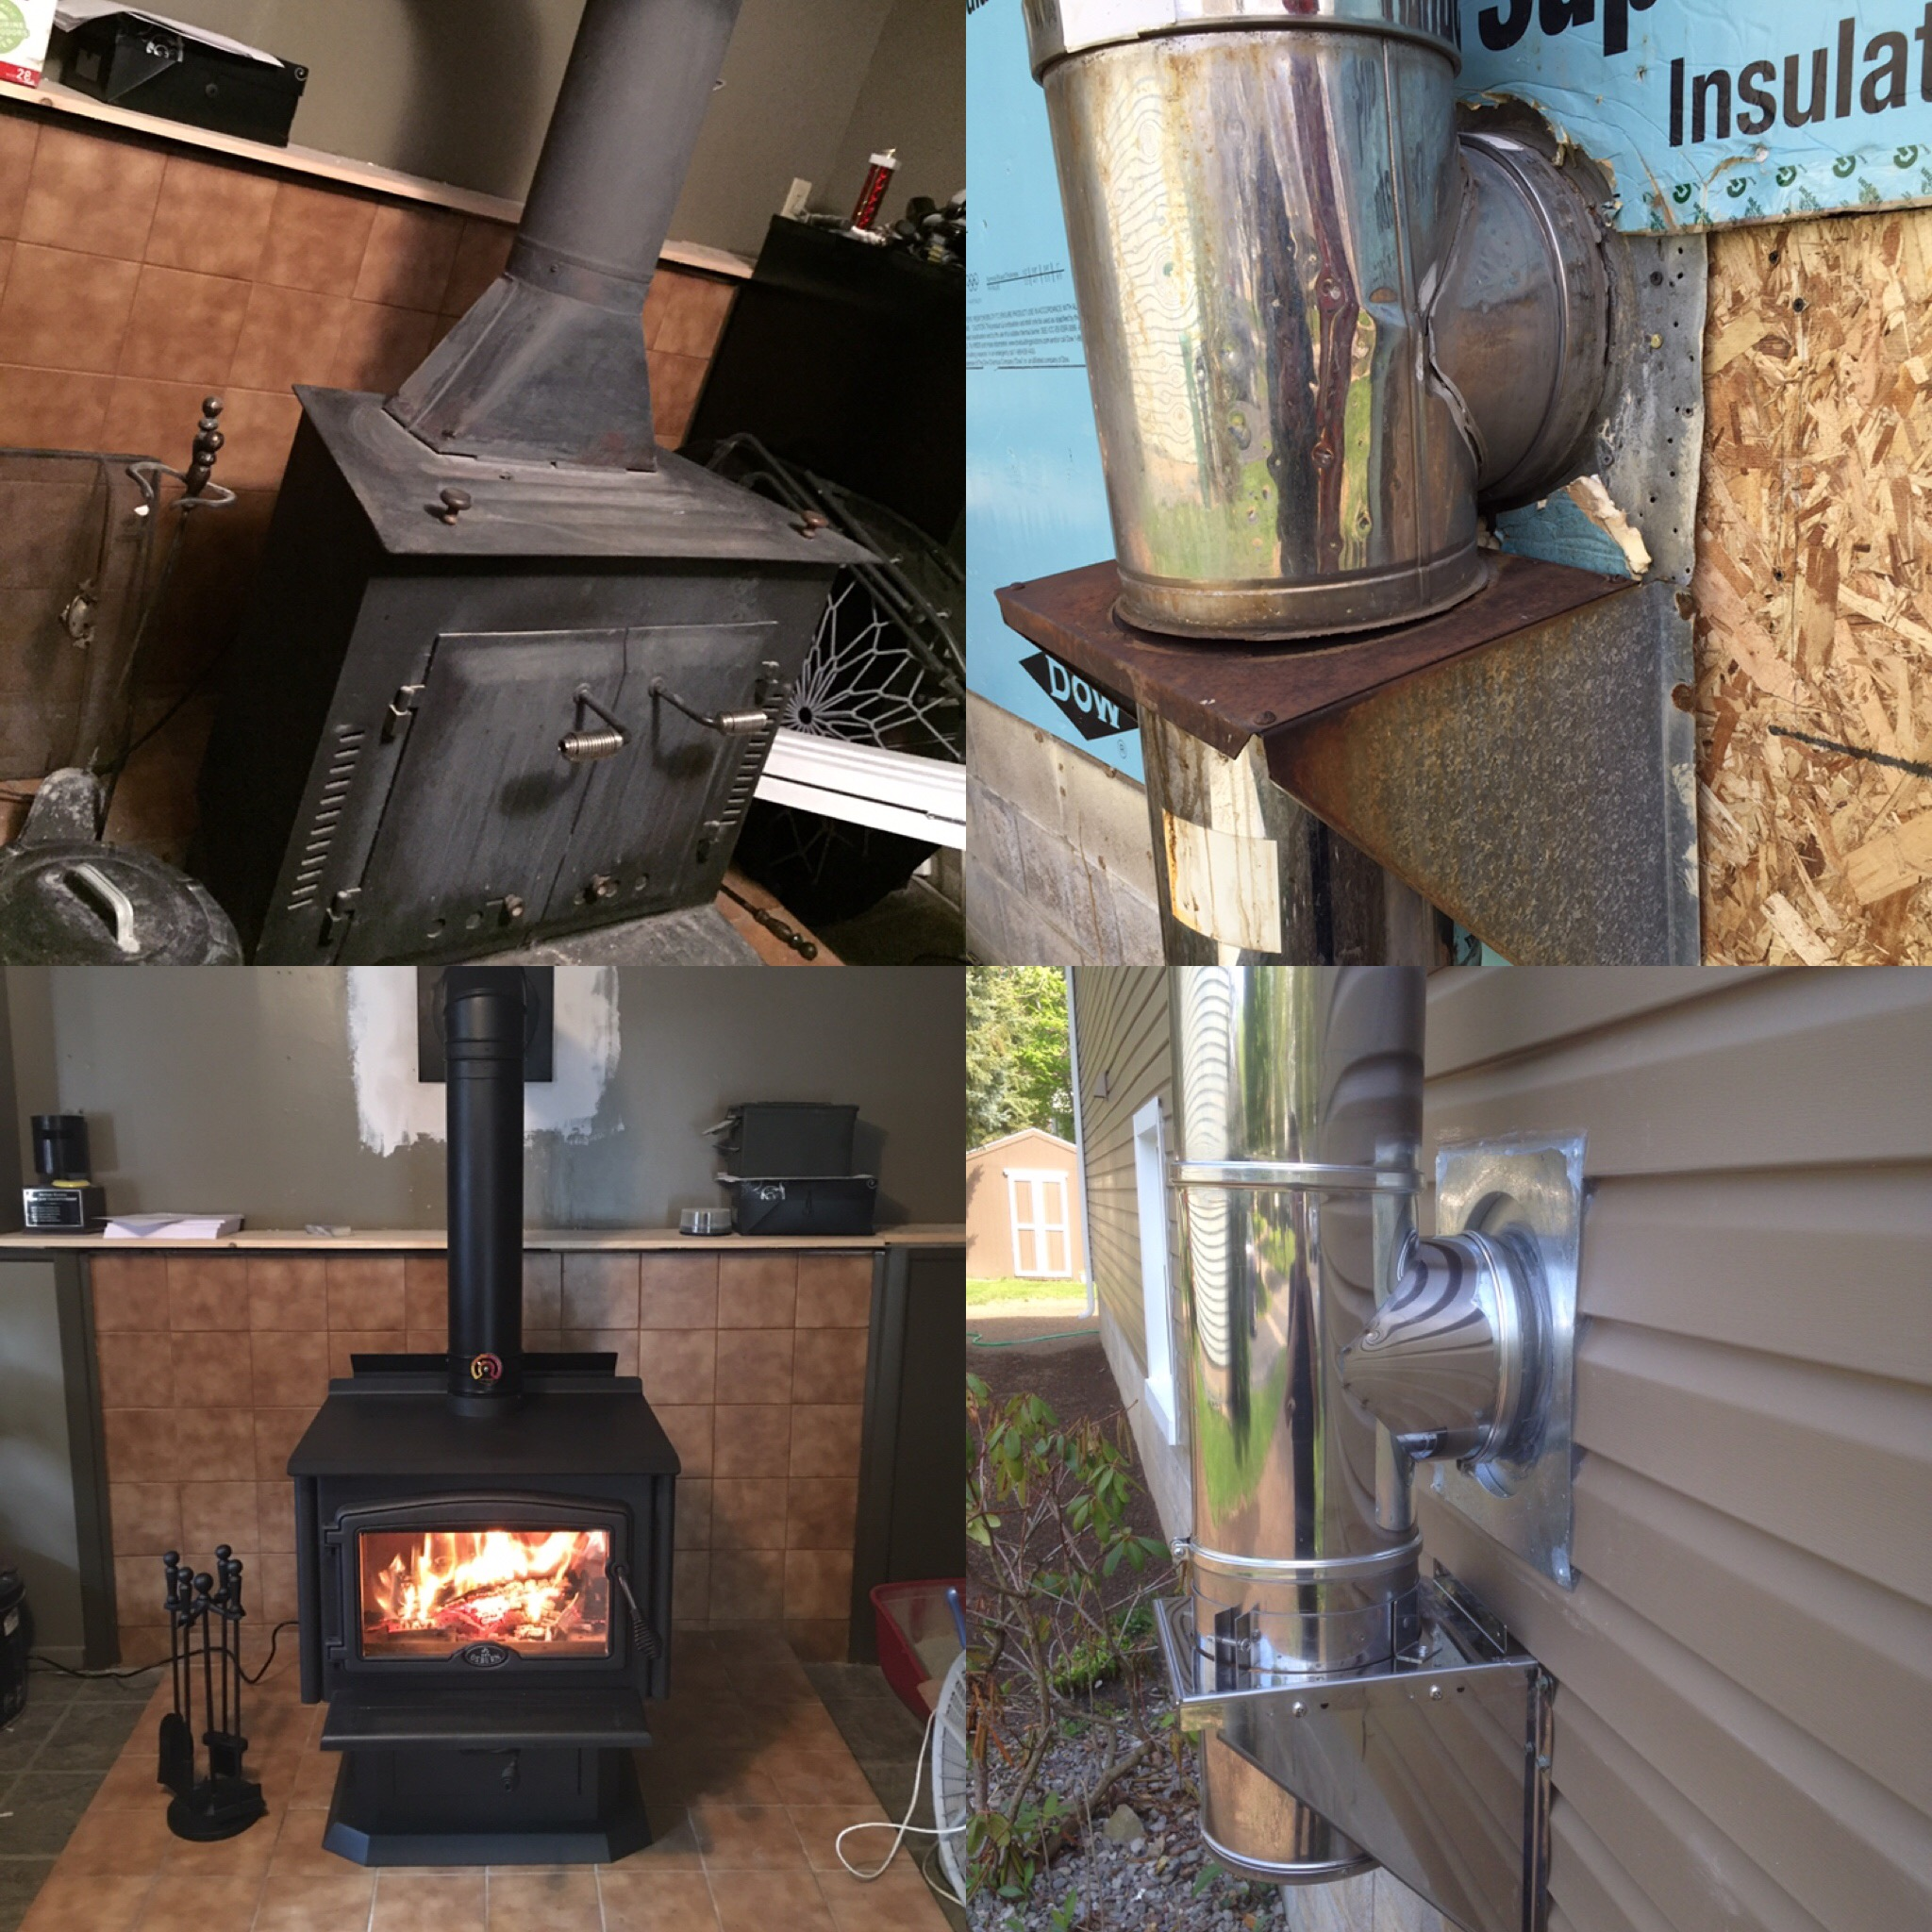 Image of a traditional 2000 wood stove by Osburn and the preexisting wood stove as the before.